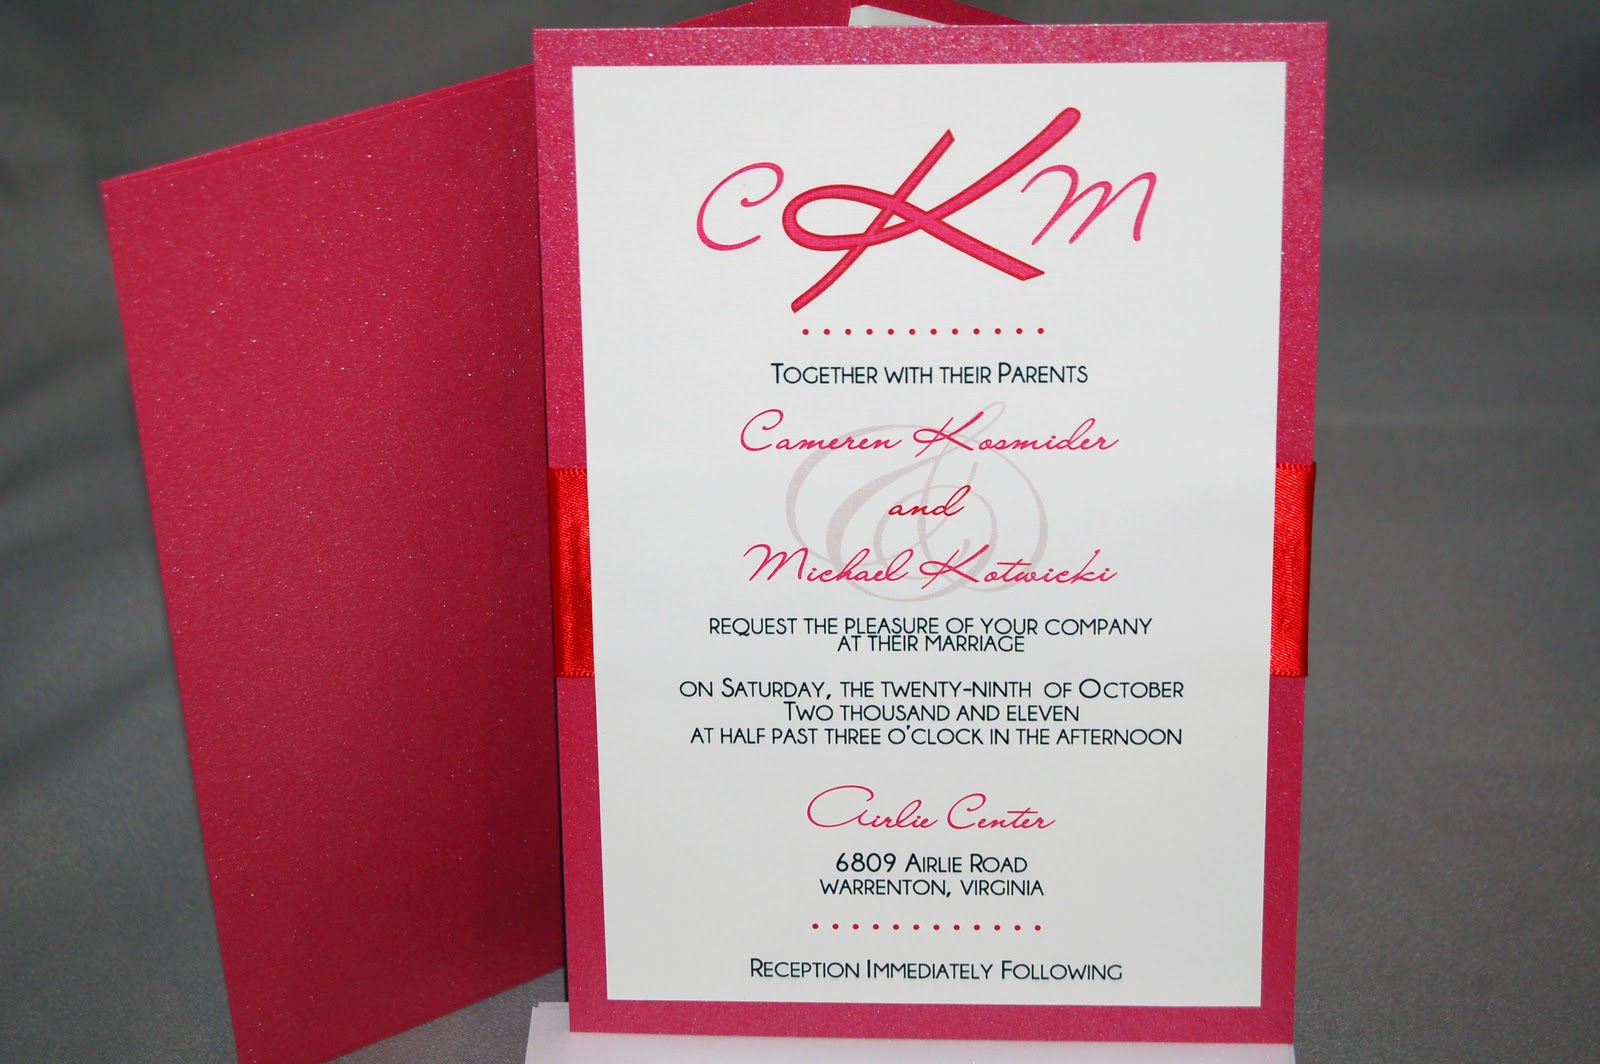 Wonderful Kinkos Wedding Invitations | Lenq.me